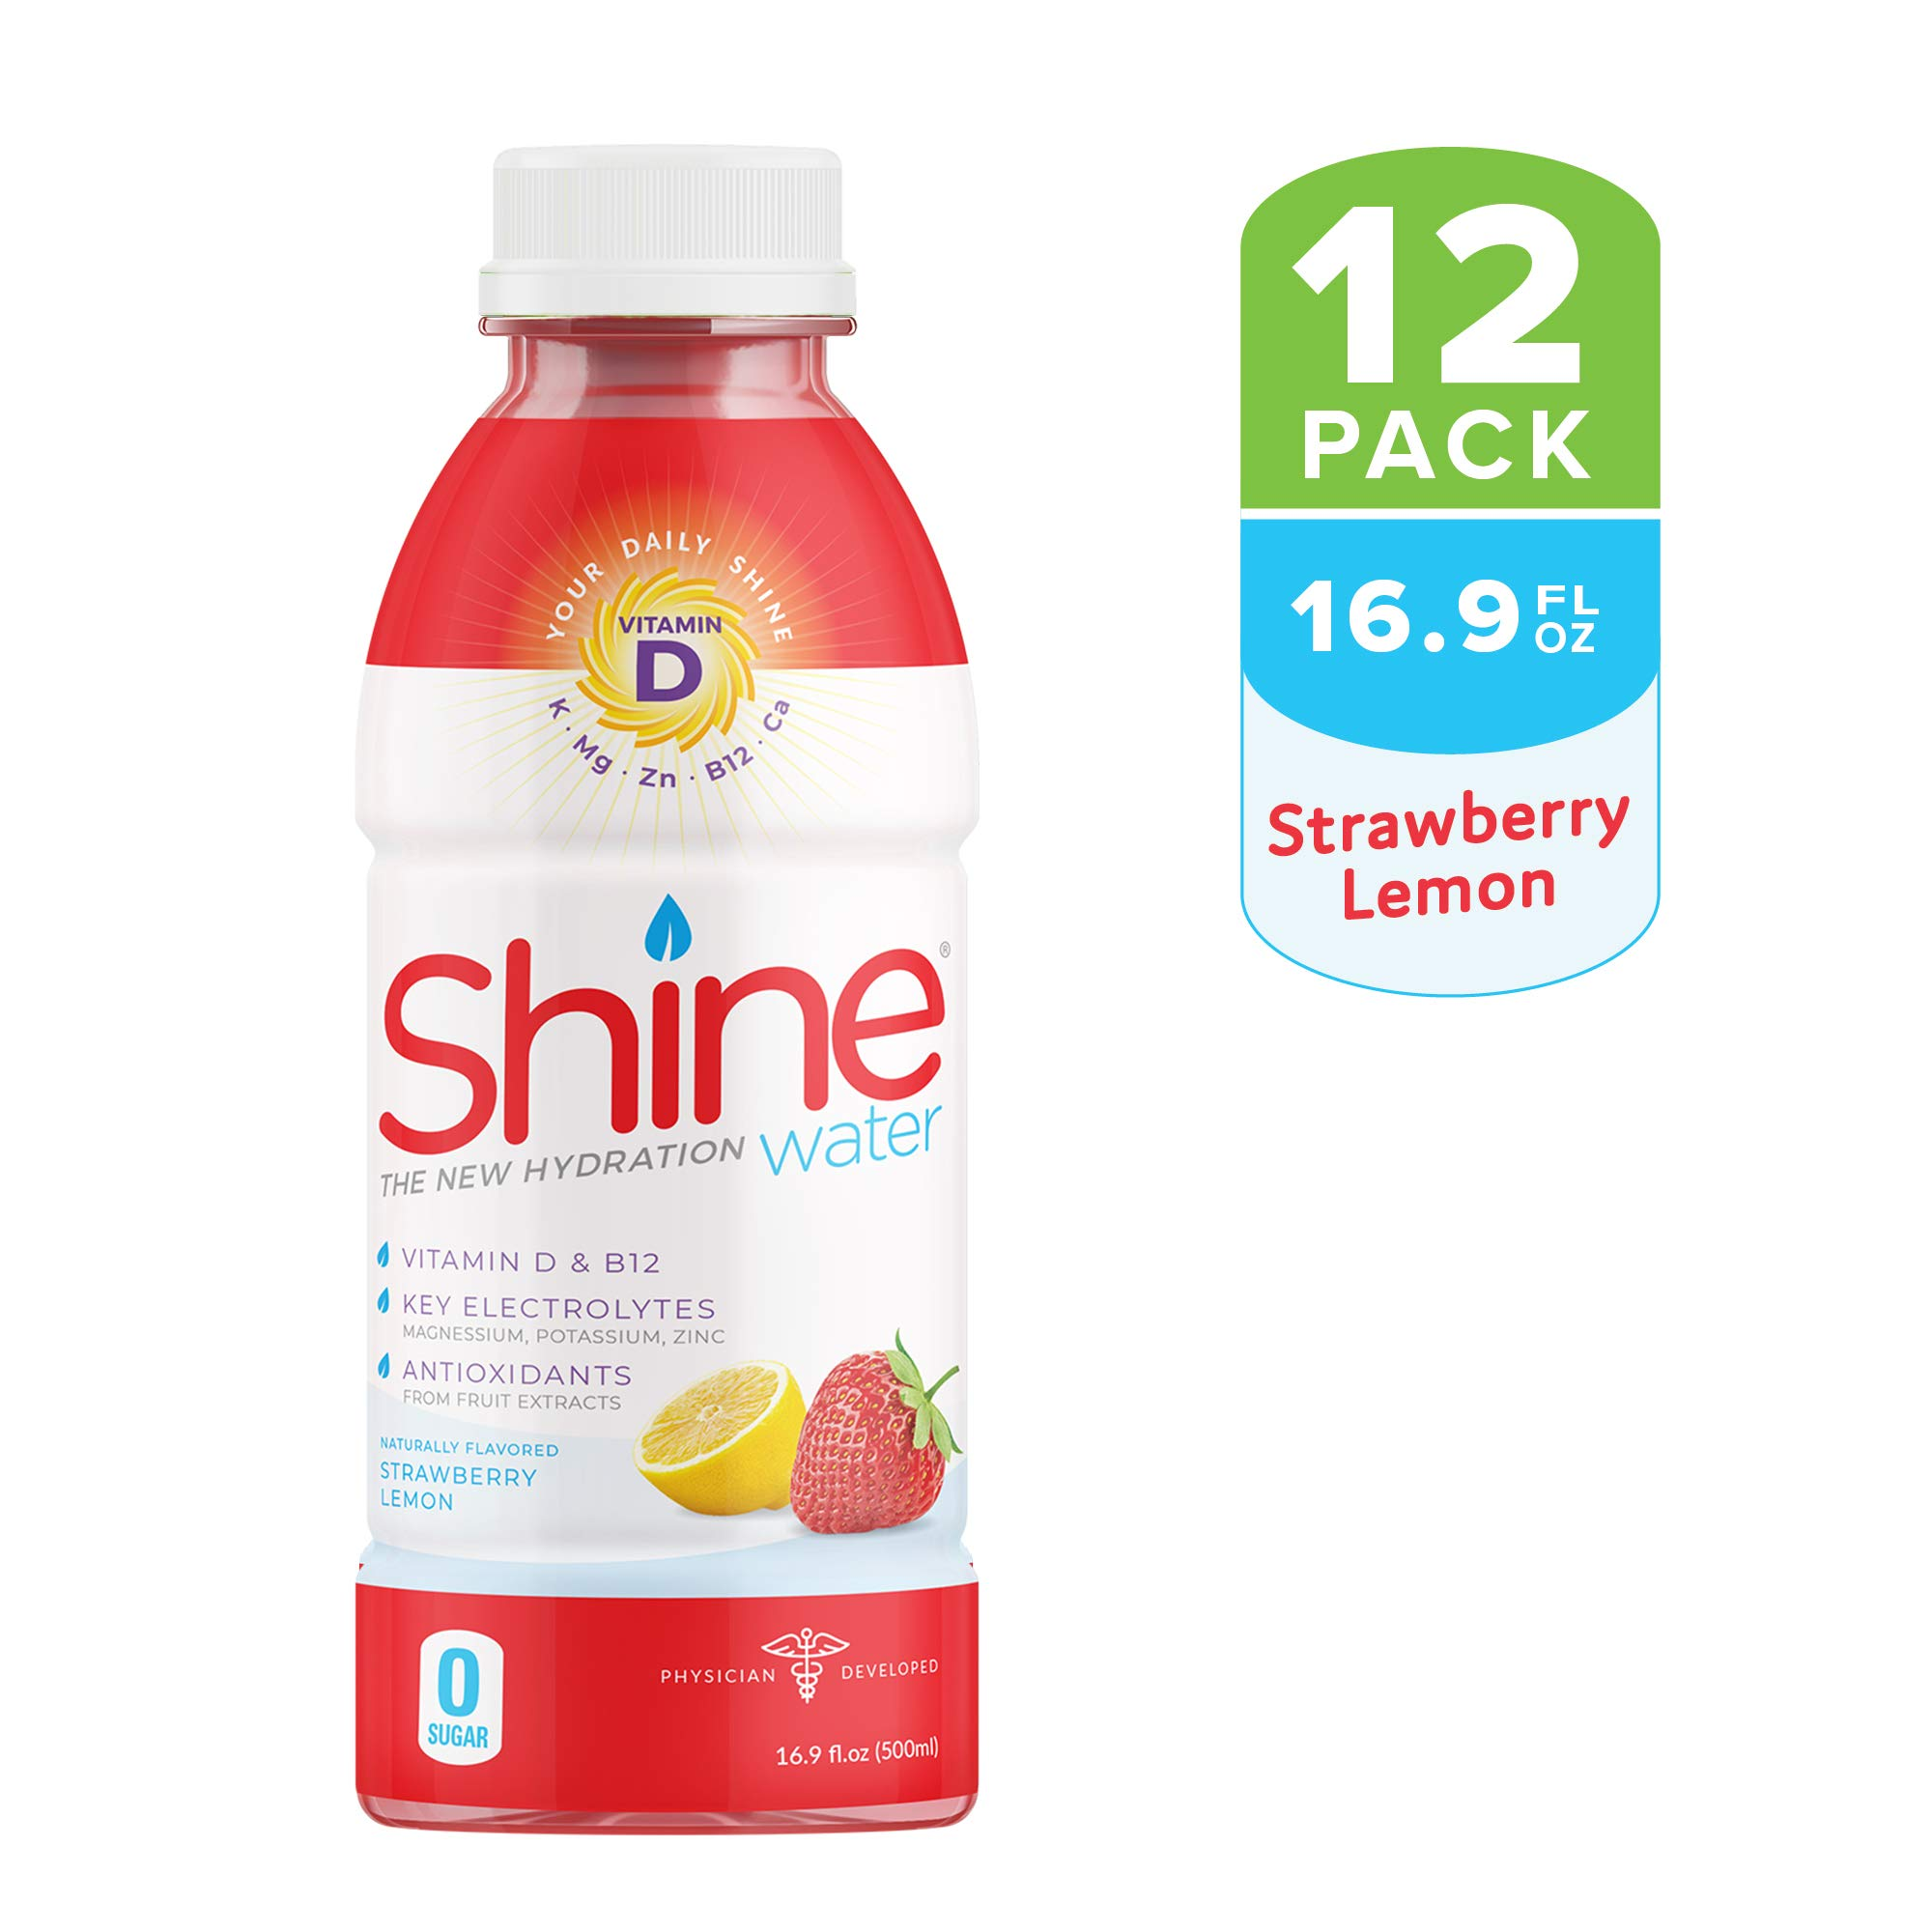 """Shine Water """"The New Hydration"""" Vitamin D + Electrolyte + Antioxidant Water, Zero Sugar, Naturally Flavored, Made in The USA! 16.9oz. BPA Free Bottle (12 Pack) (STRAWBERRY LEMON)"""